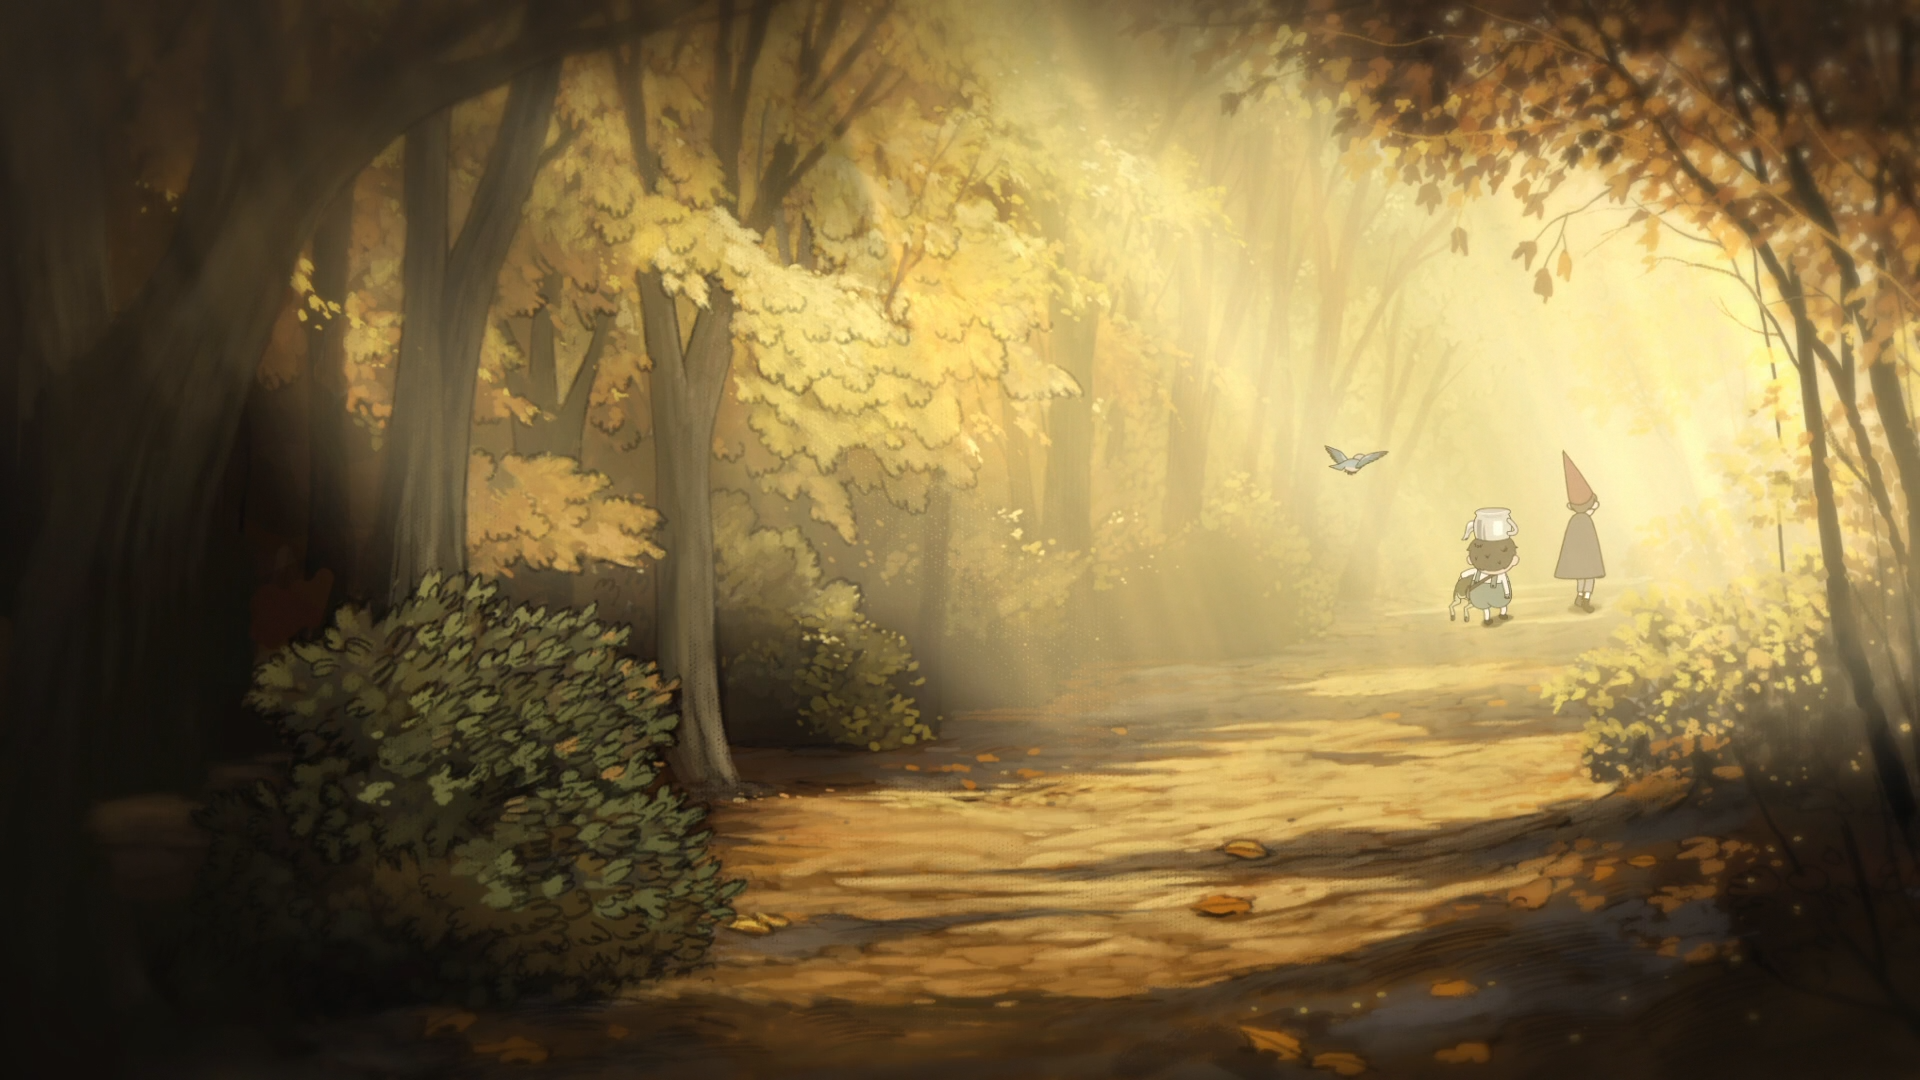 Over the garden wall images overt the garden wall hd Wallpapers for the wall